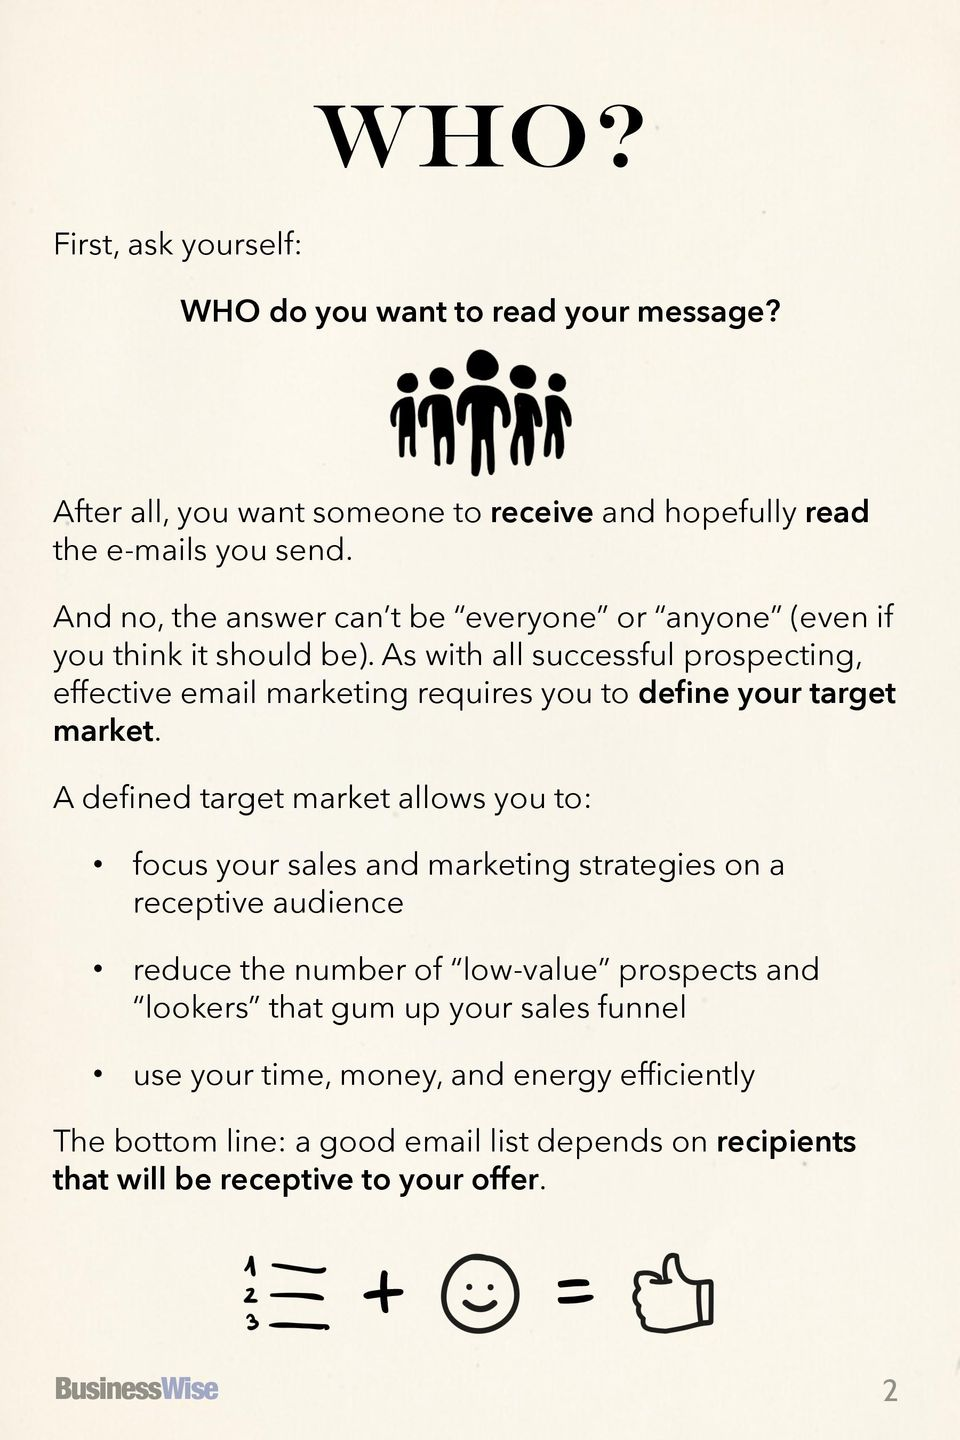 As with all successful prospecting, effective email marketing requires you to define your target market.